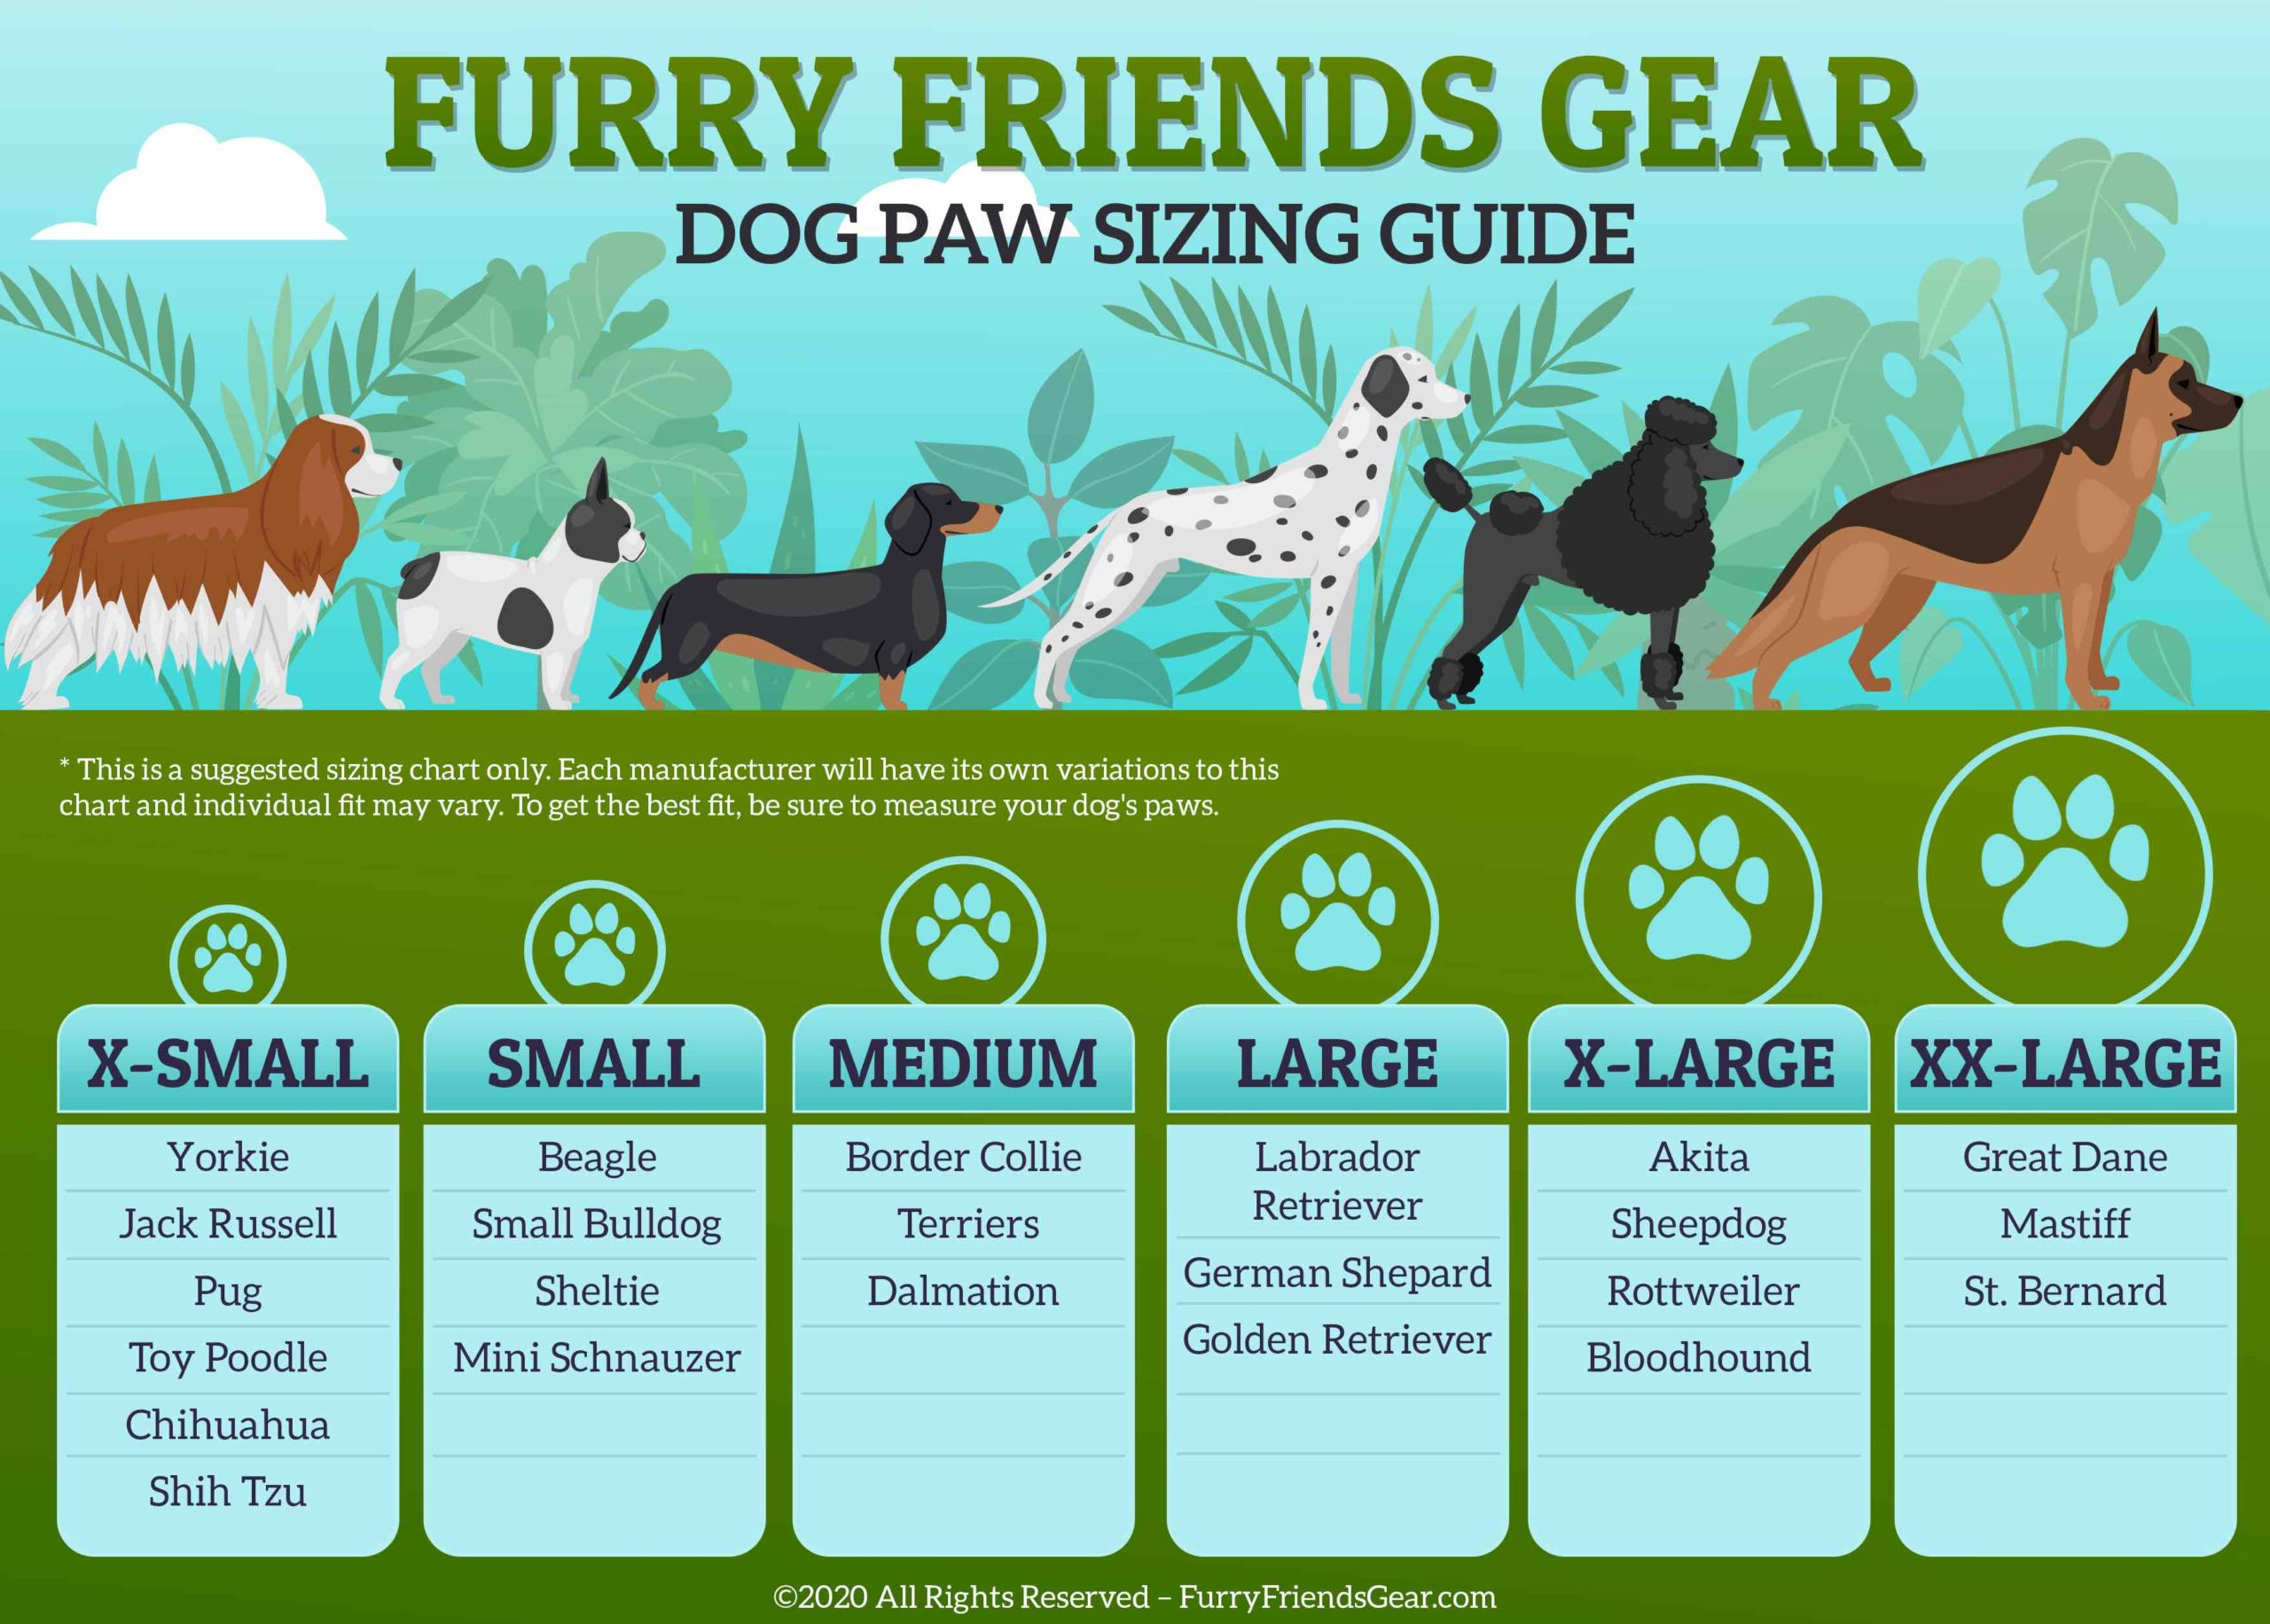 Dog Paw Sizing Guide